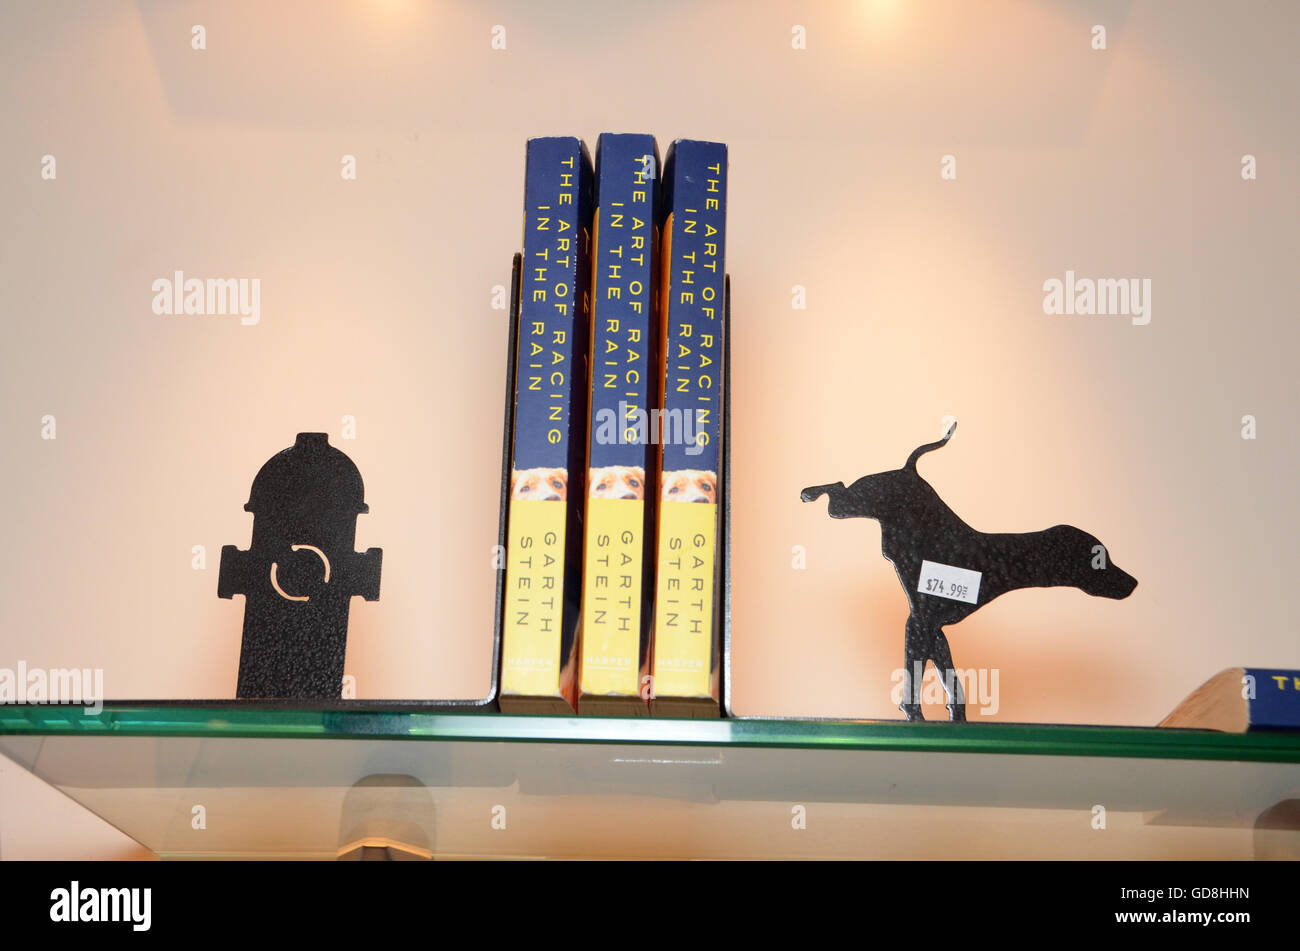 D Pet Hotels Chelsea Manhattan new york USA the art of racing in the rain book dog and water hydrant book ends - Stock Image